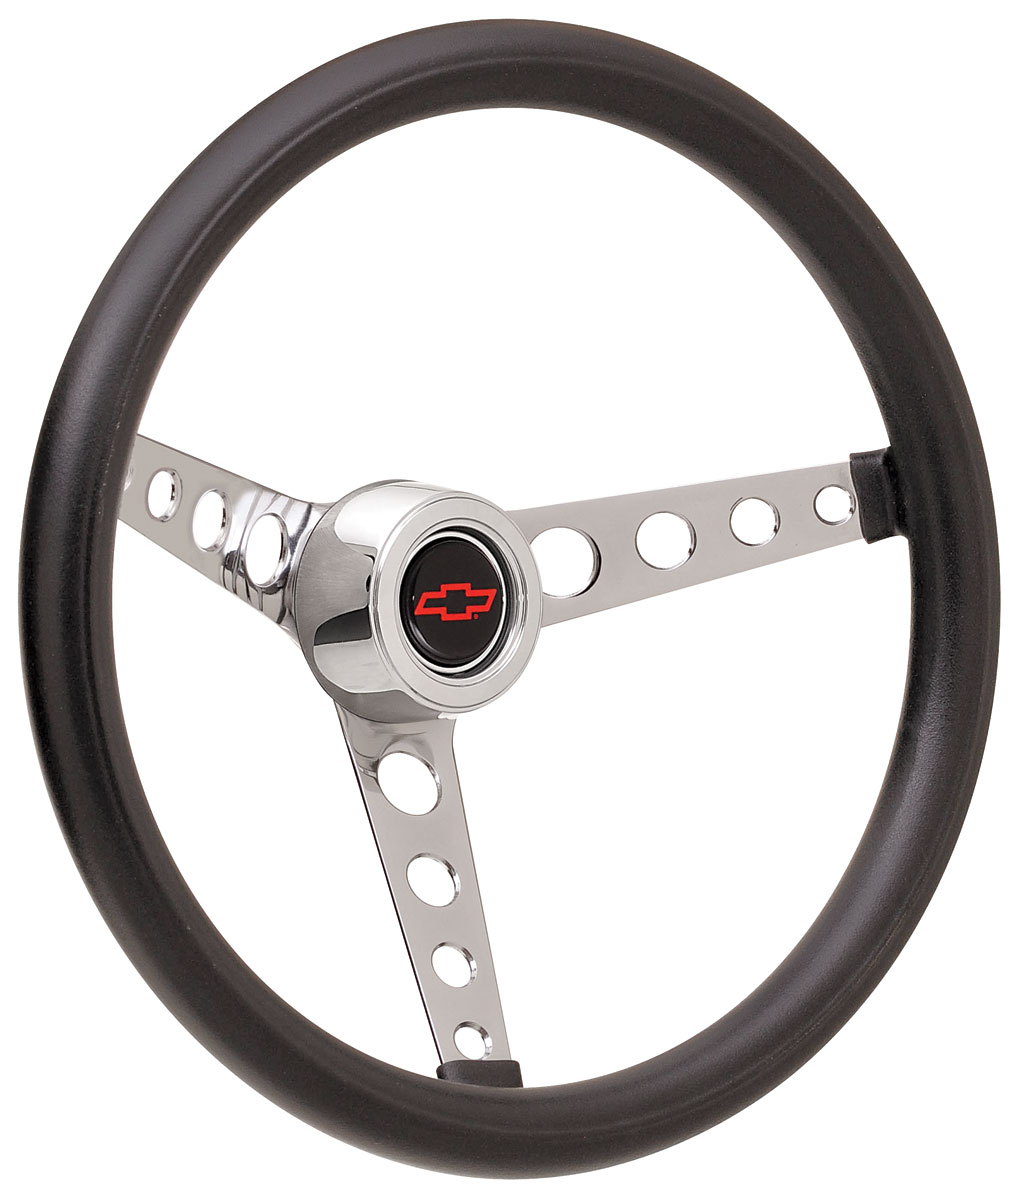 Photo of Steering Wheel Kits, Classic Foam Hi-Rise Cap - Polished with red Bowtie center